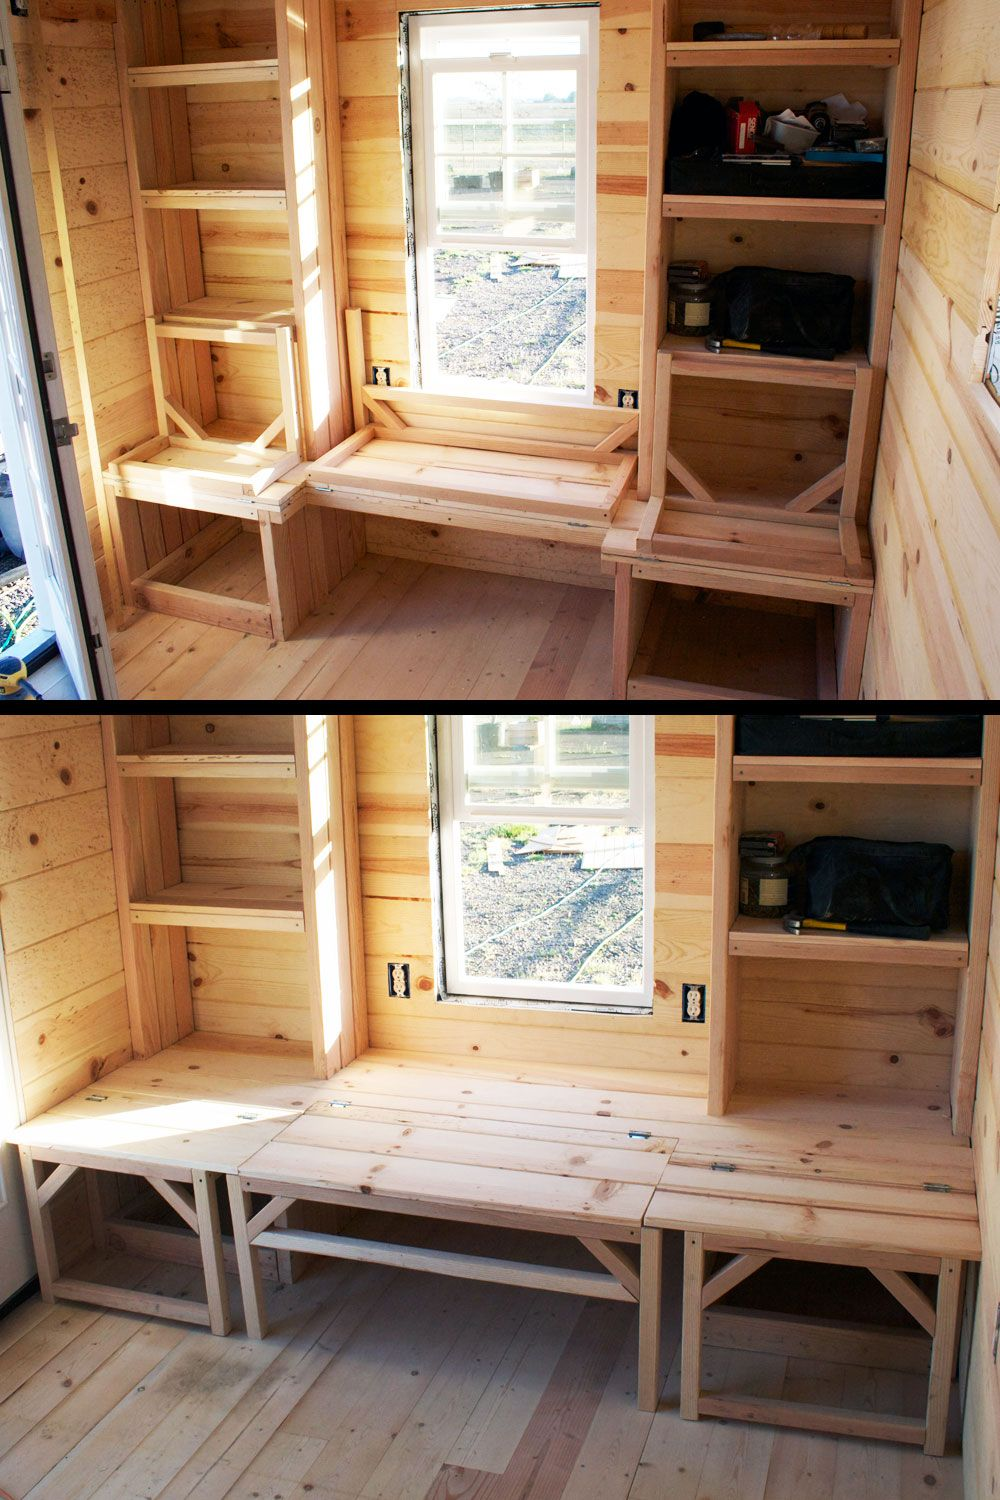 Smart Designs For Small Homes On Instagram Smart Seating Storage Sleeping Solutions Space Tiny House Interior Design Tiny House Interior Modern Tiny House